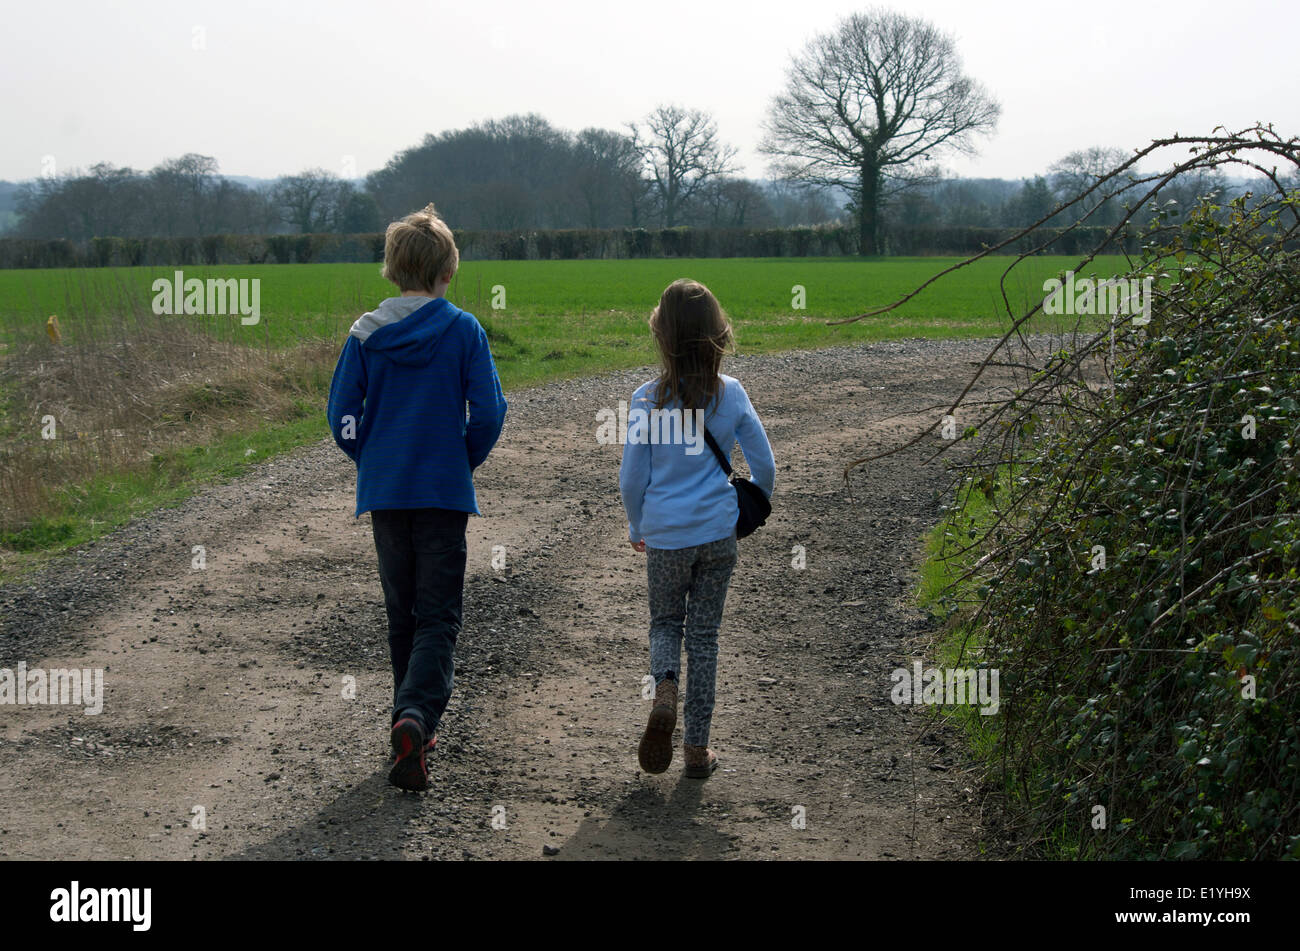 Children walking outdoors in the springtime. Siblings -11 year old boy and 9 year old girl. - Stock Image